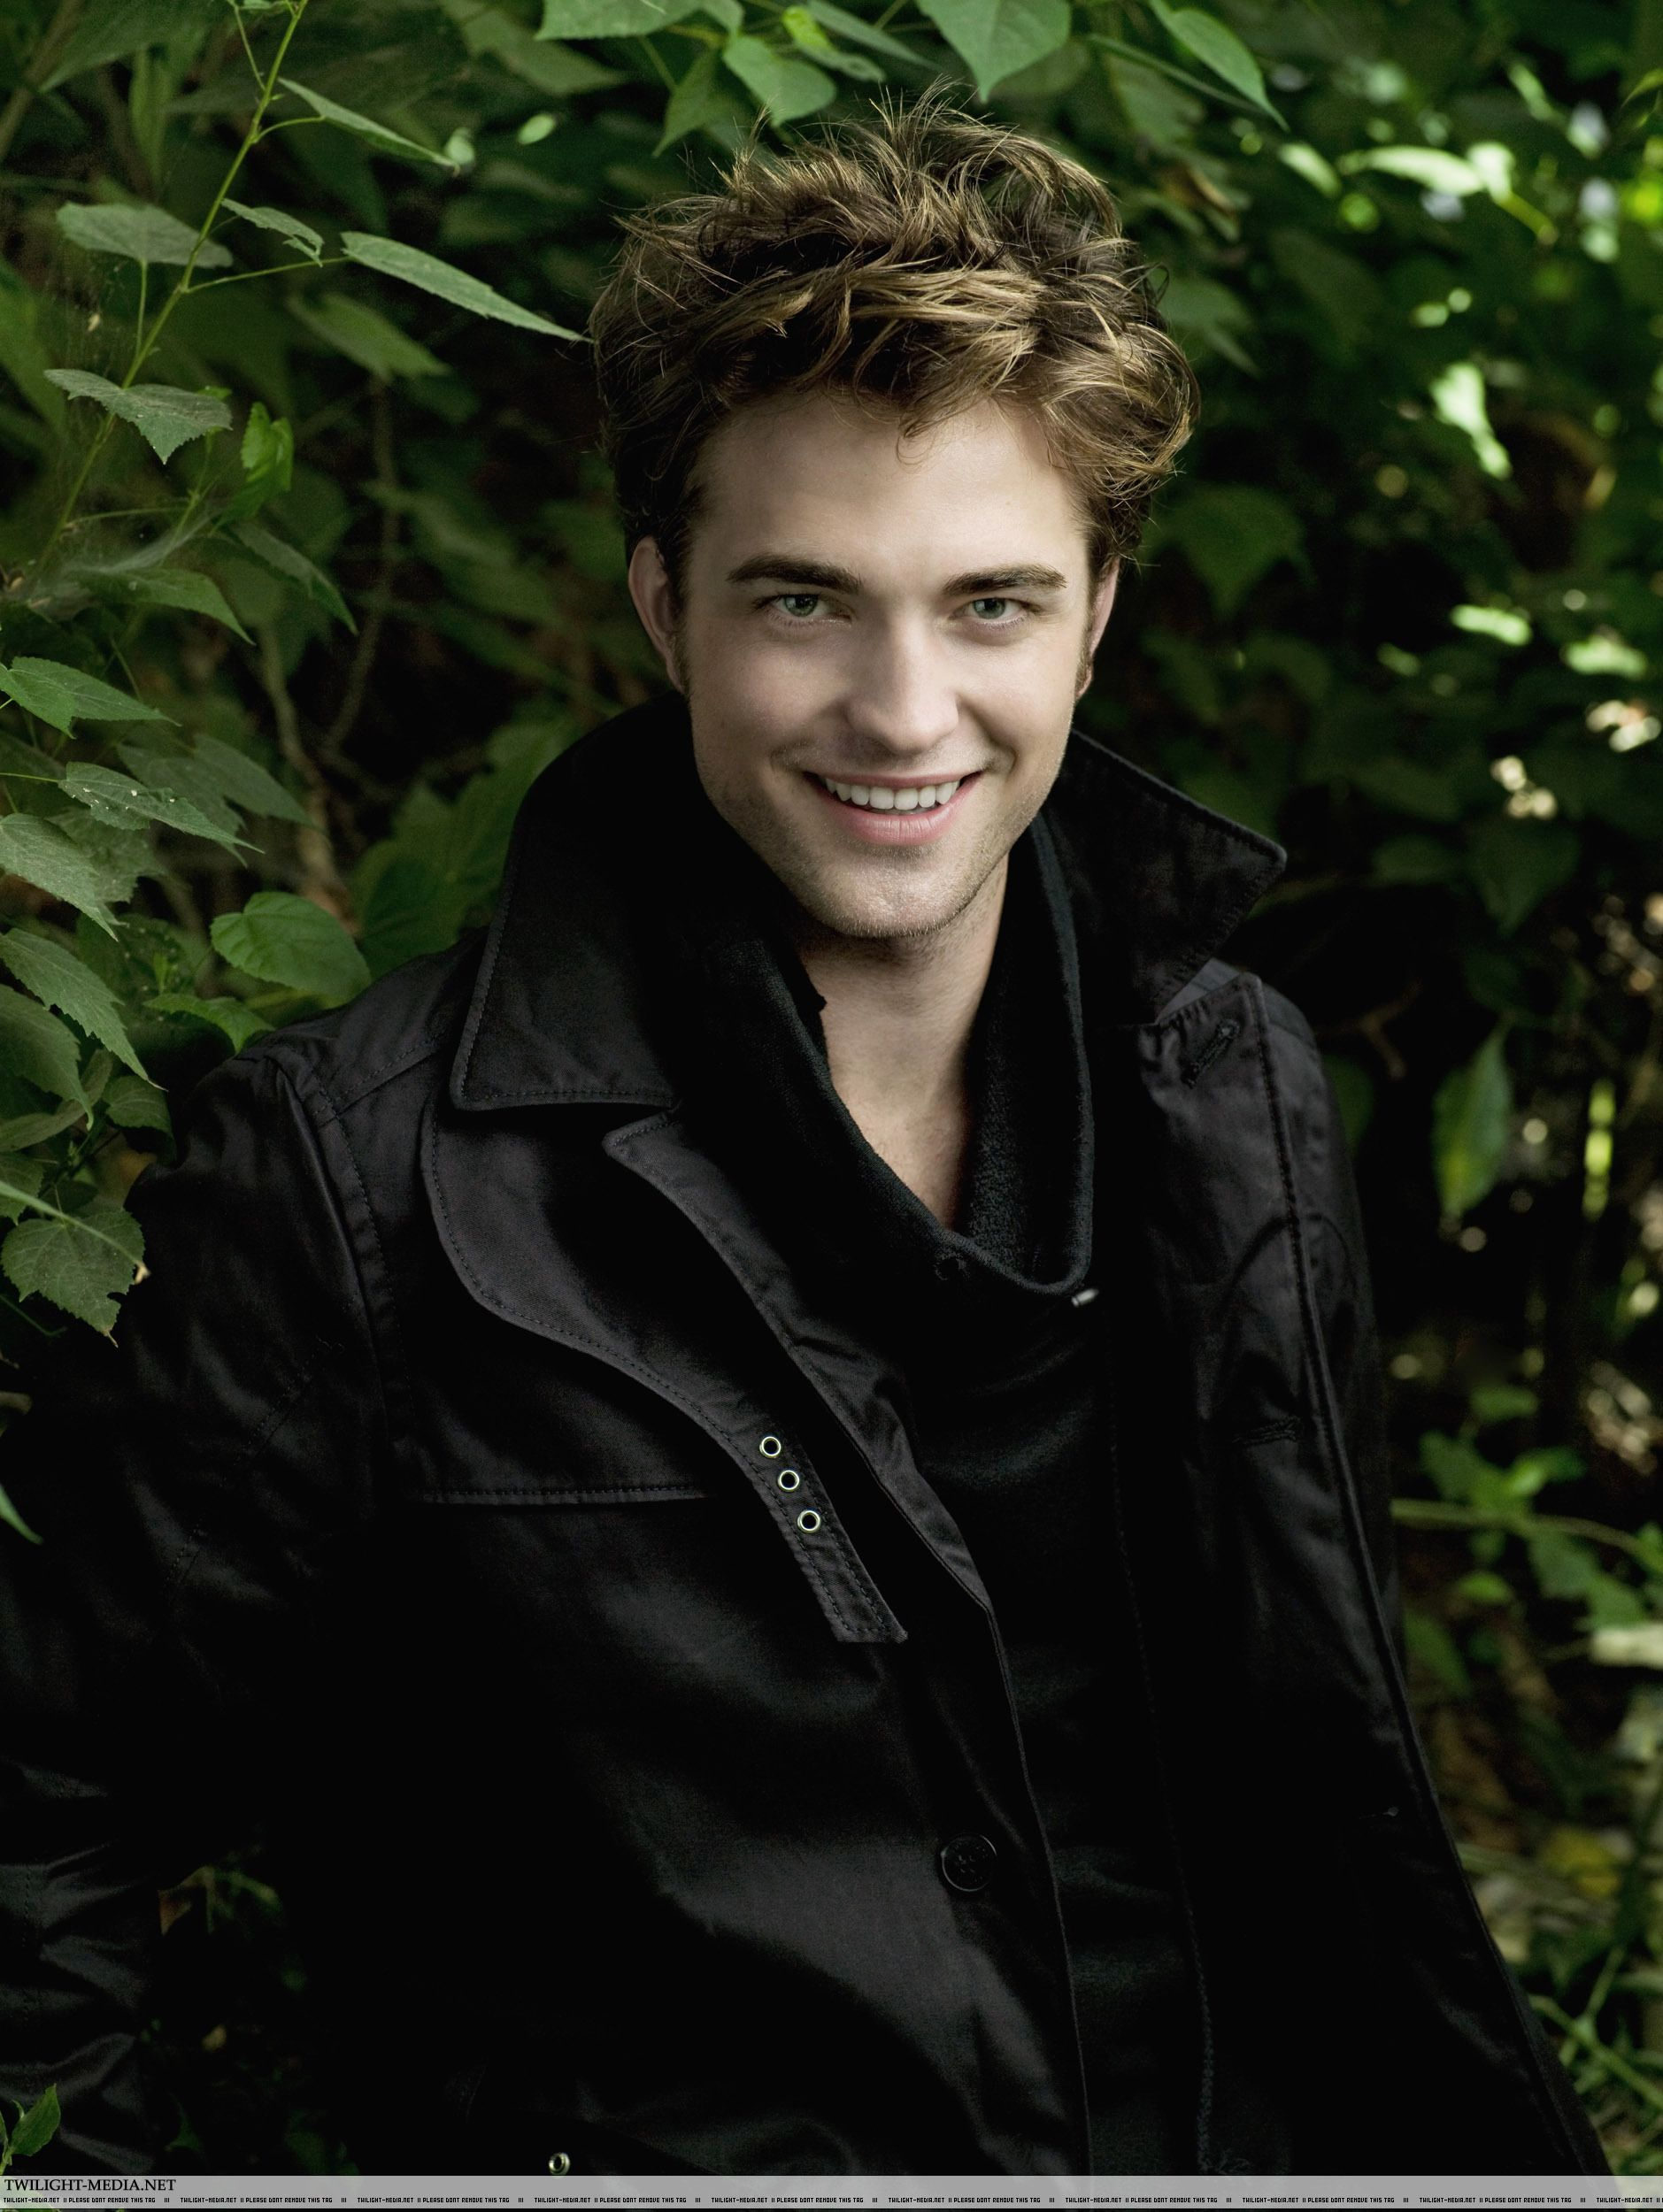 Robert Pattinson was best known for his role as Cedric